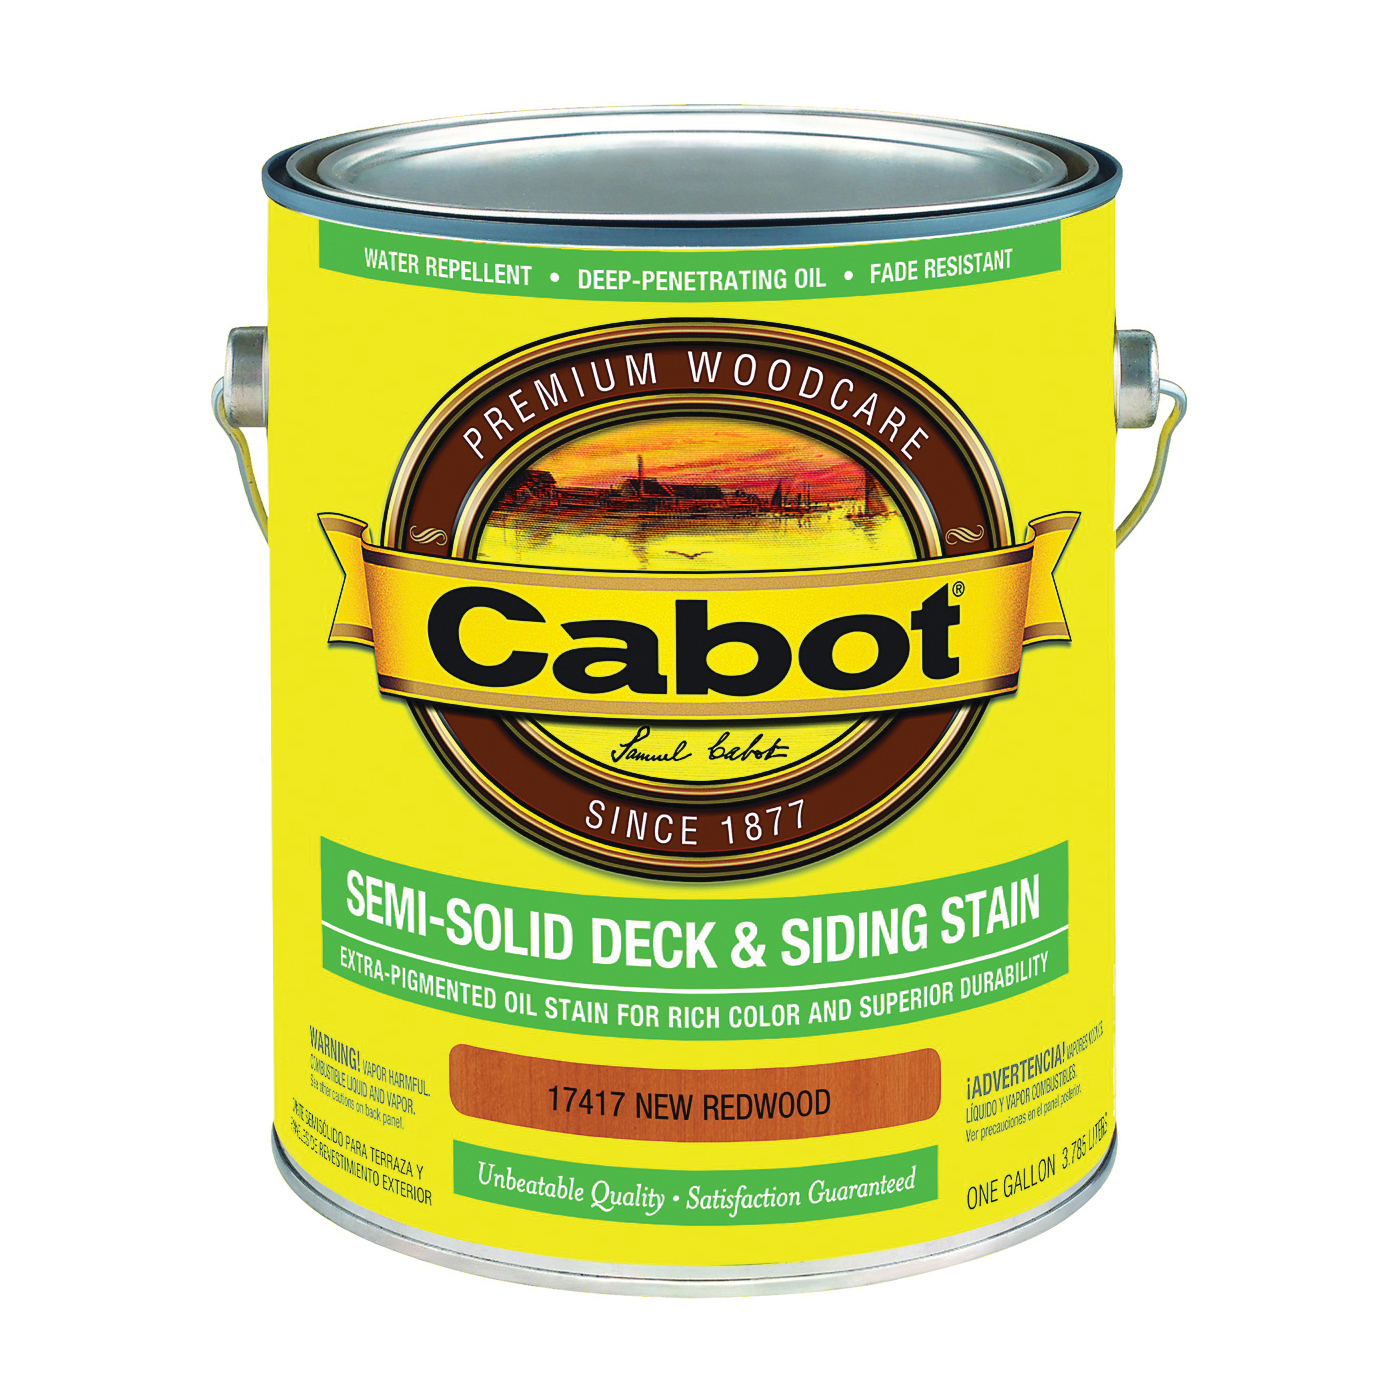 Picture of Cabot 17417 Deck and Siding Stain, New Redwood, Liquid, 1 gal